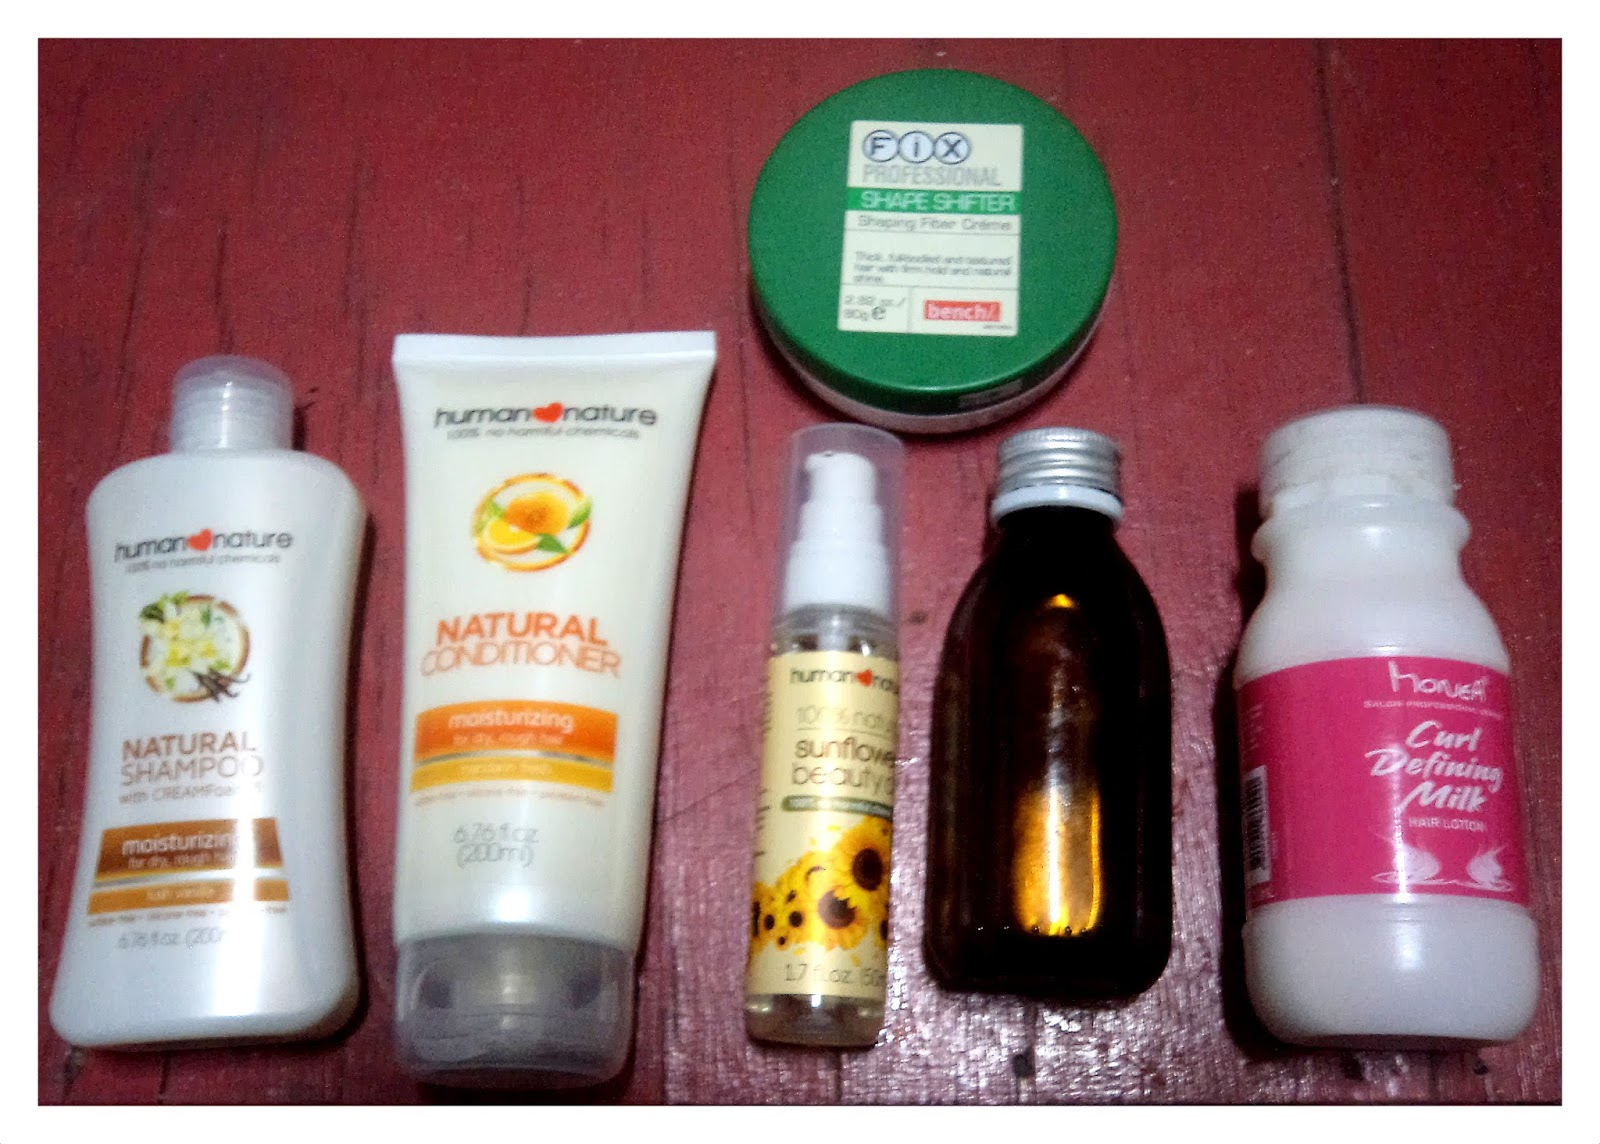 Managing Curls A Review Of Affordable Products For Natural Waves